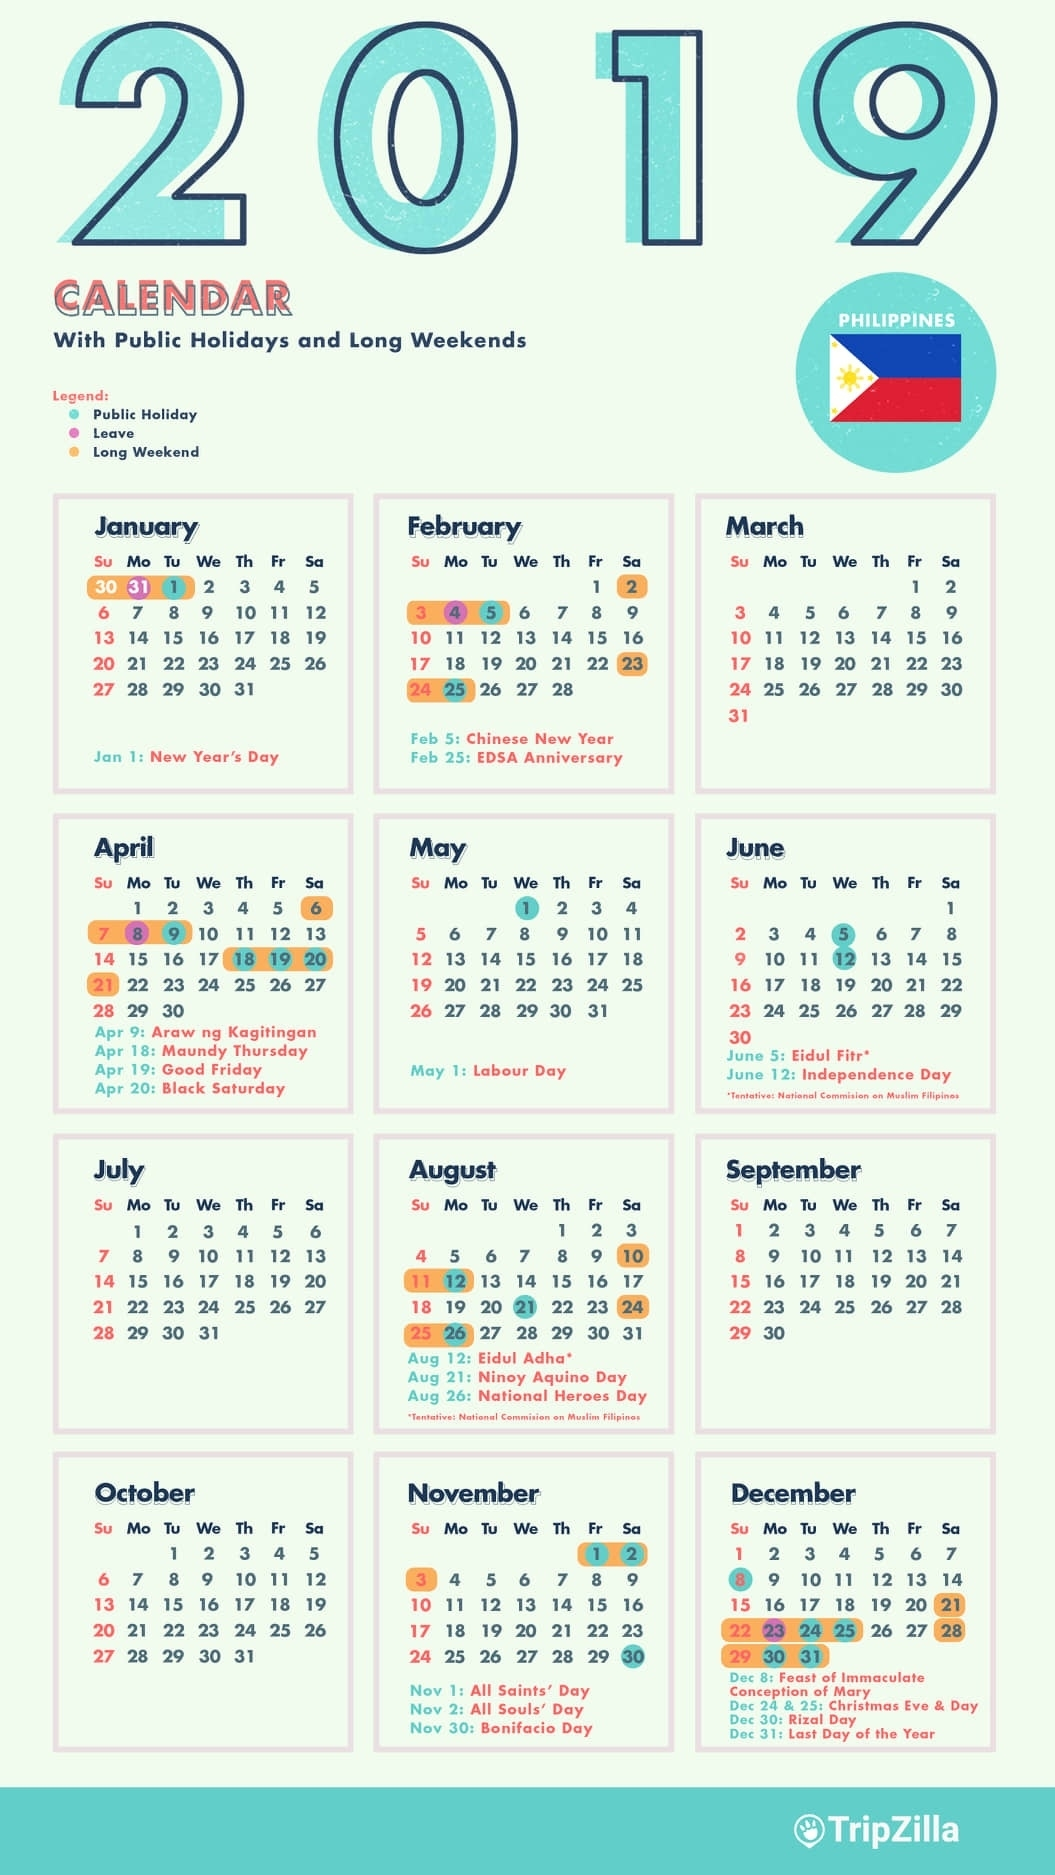 10 Long Weekends In The Philippines In 2019 With Calendar & Cheatsheet 2020 Calendar Philippines With Holidays